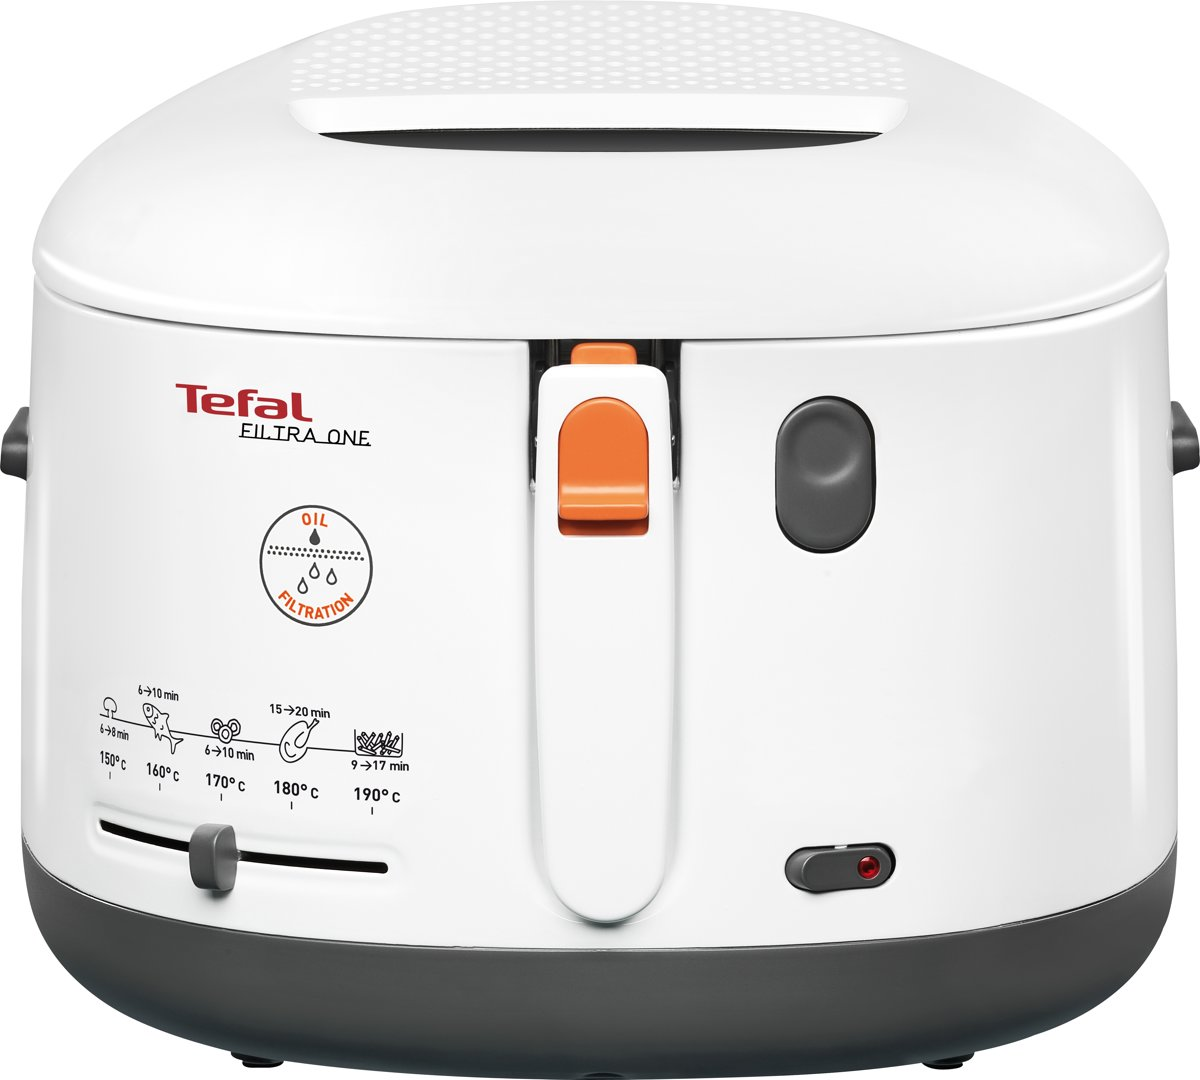 Tefal FF1621 friteuse wit